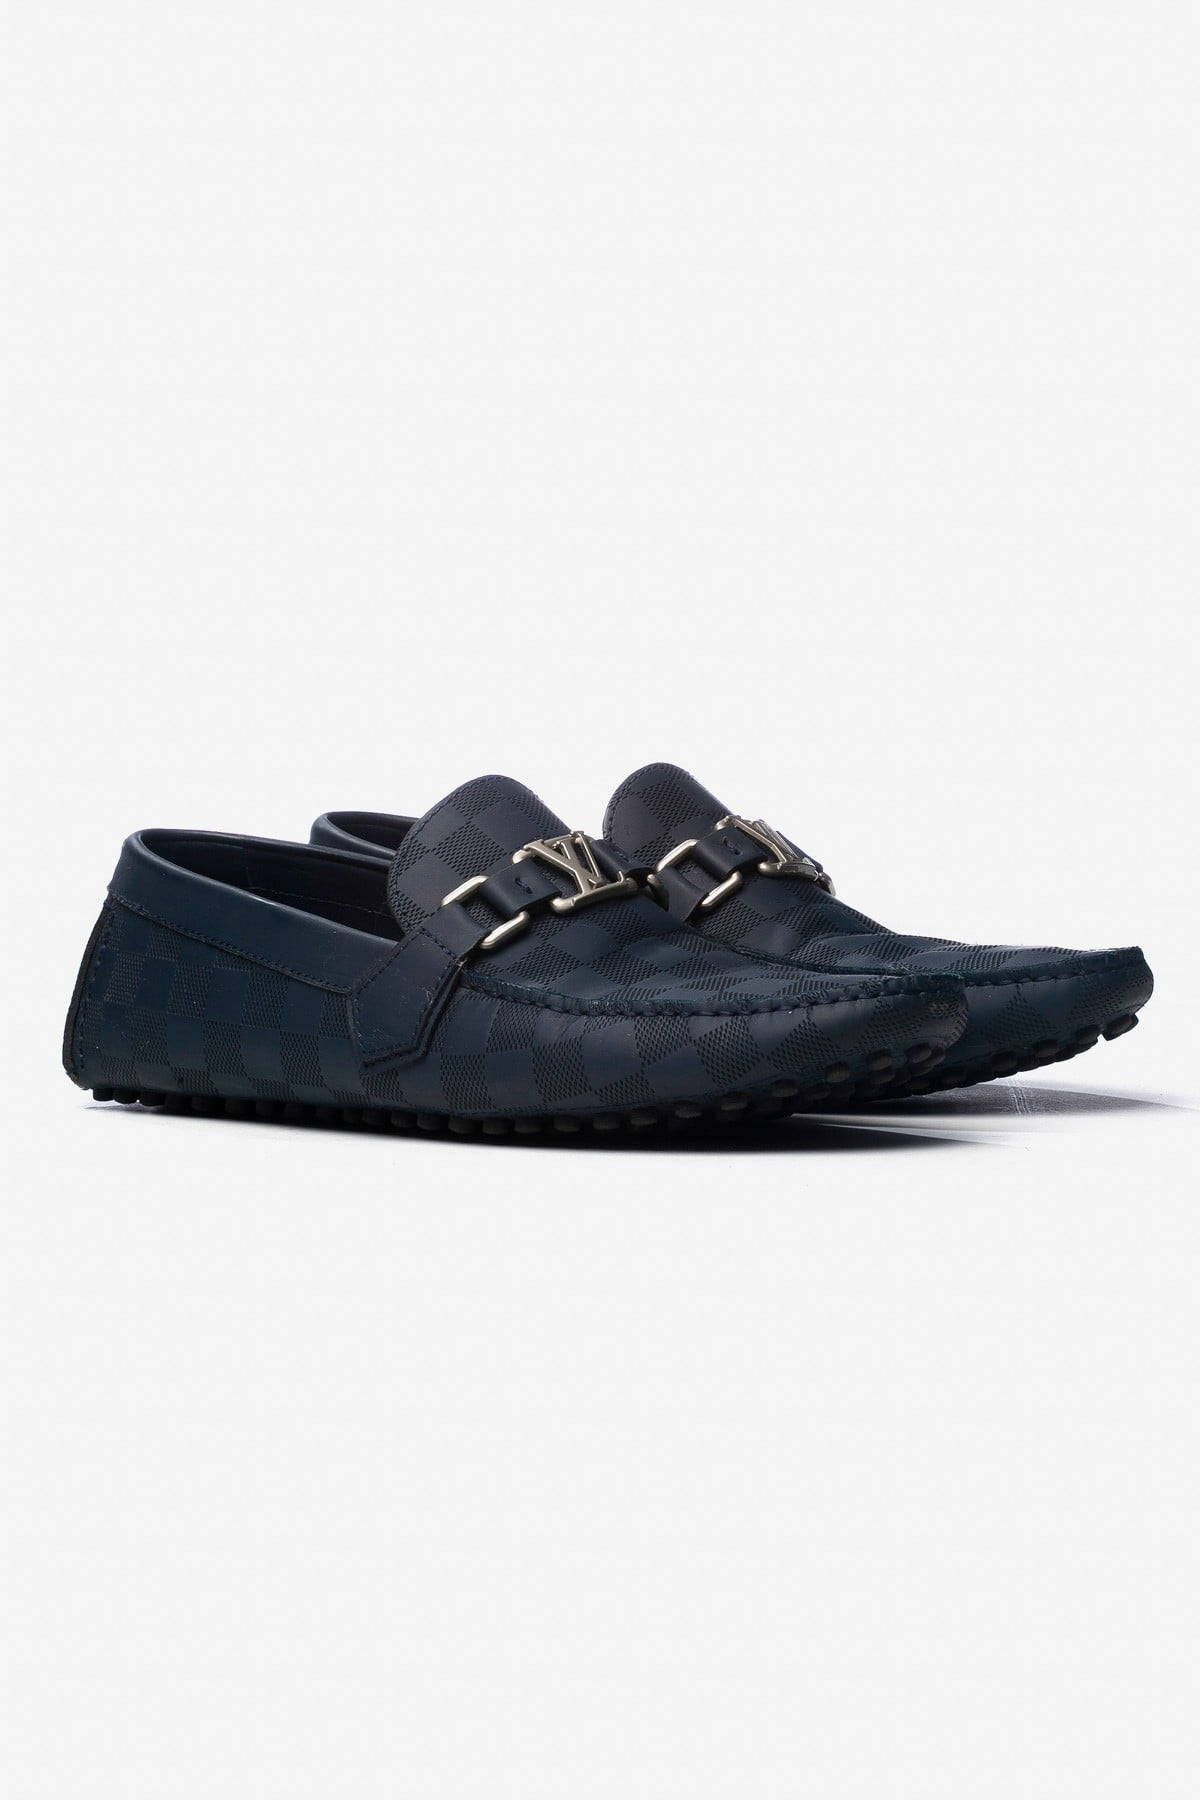 DAMIER INITIALES DRIVING LOAFERS